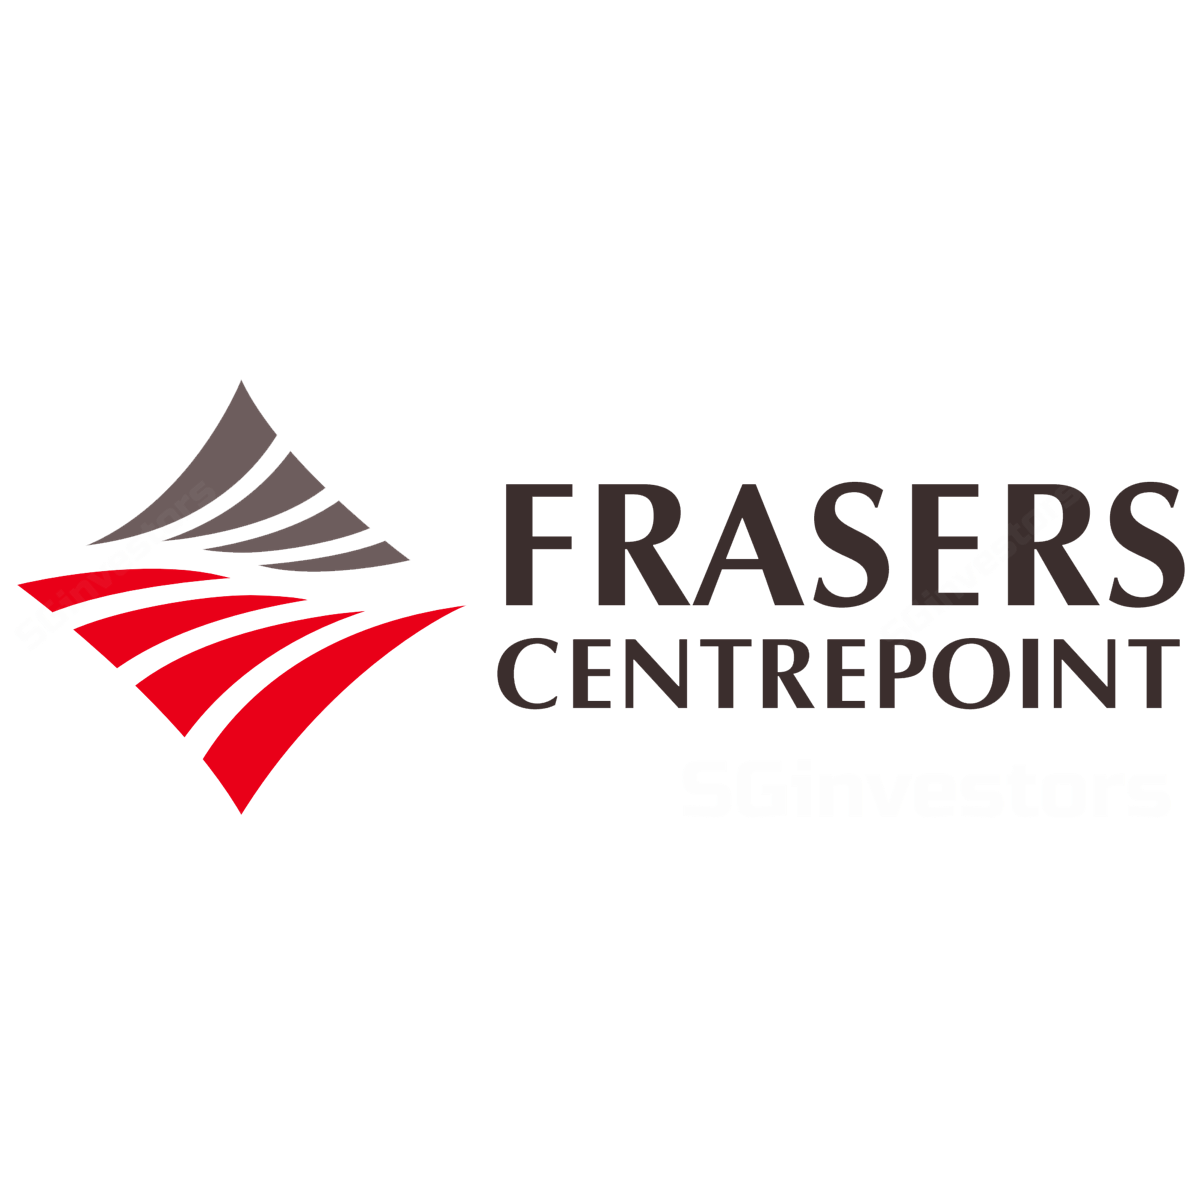 Frasers Centrepoint Ltd - CIMB Research 2017-11-13: Building Recurrent Income